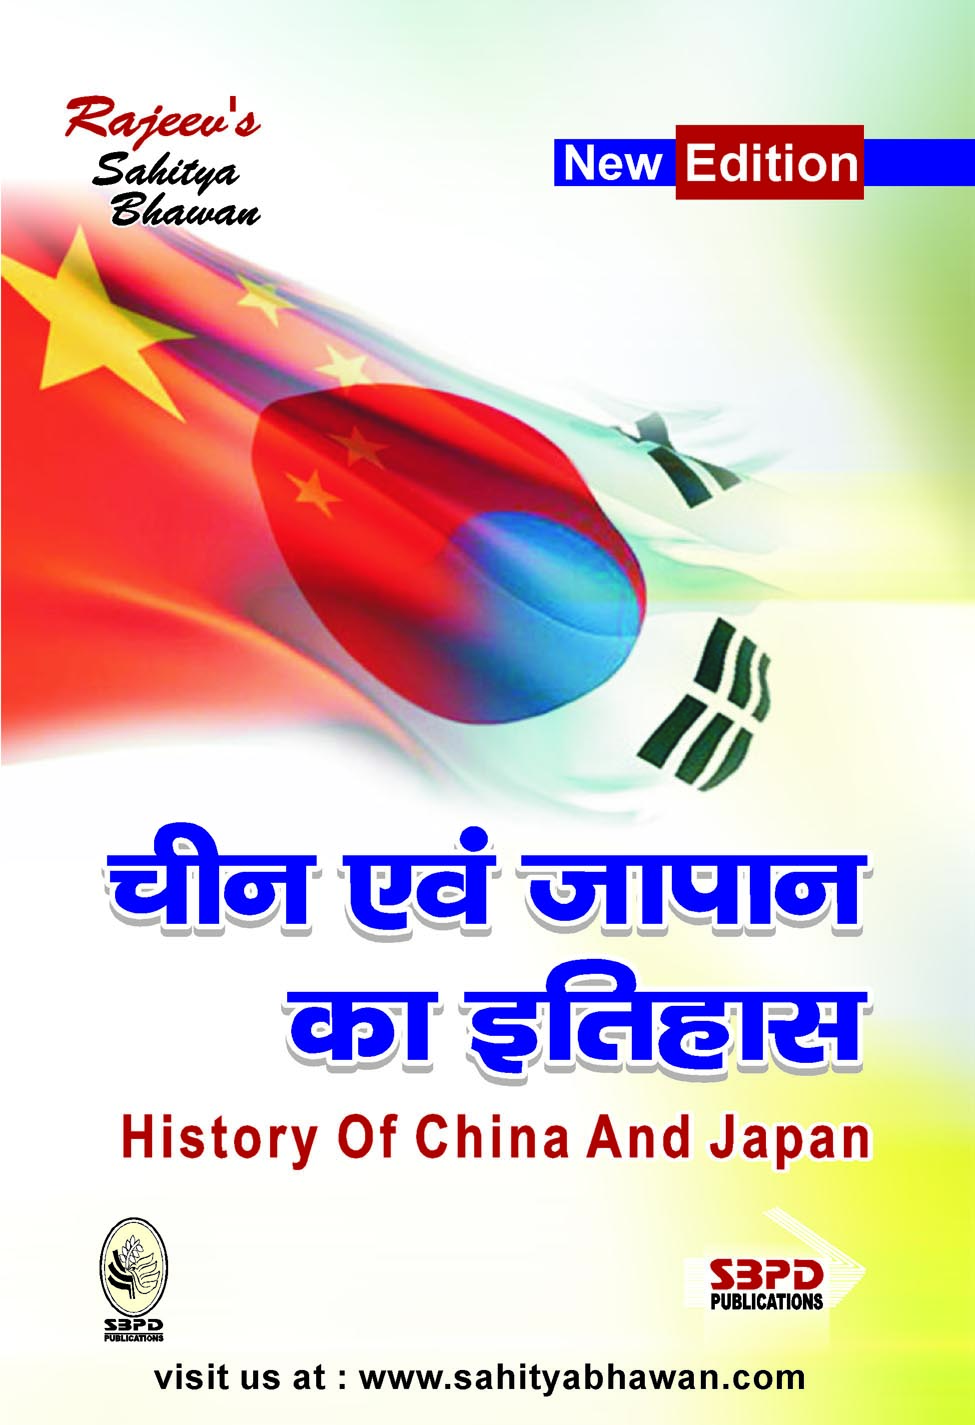 History of China And Japan